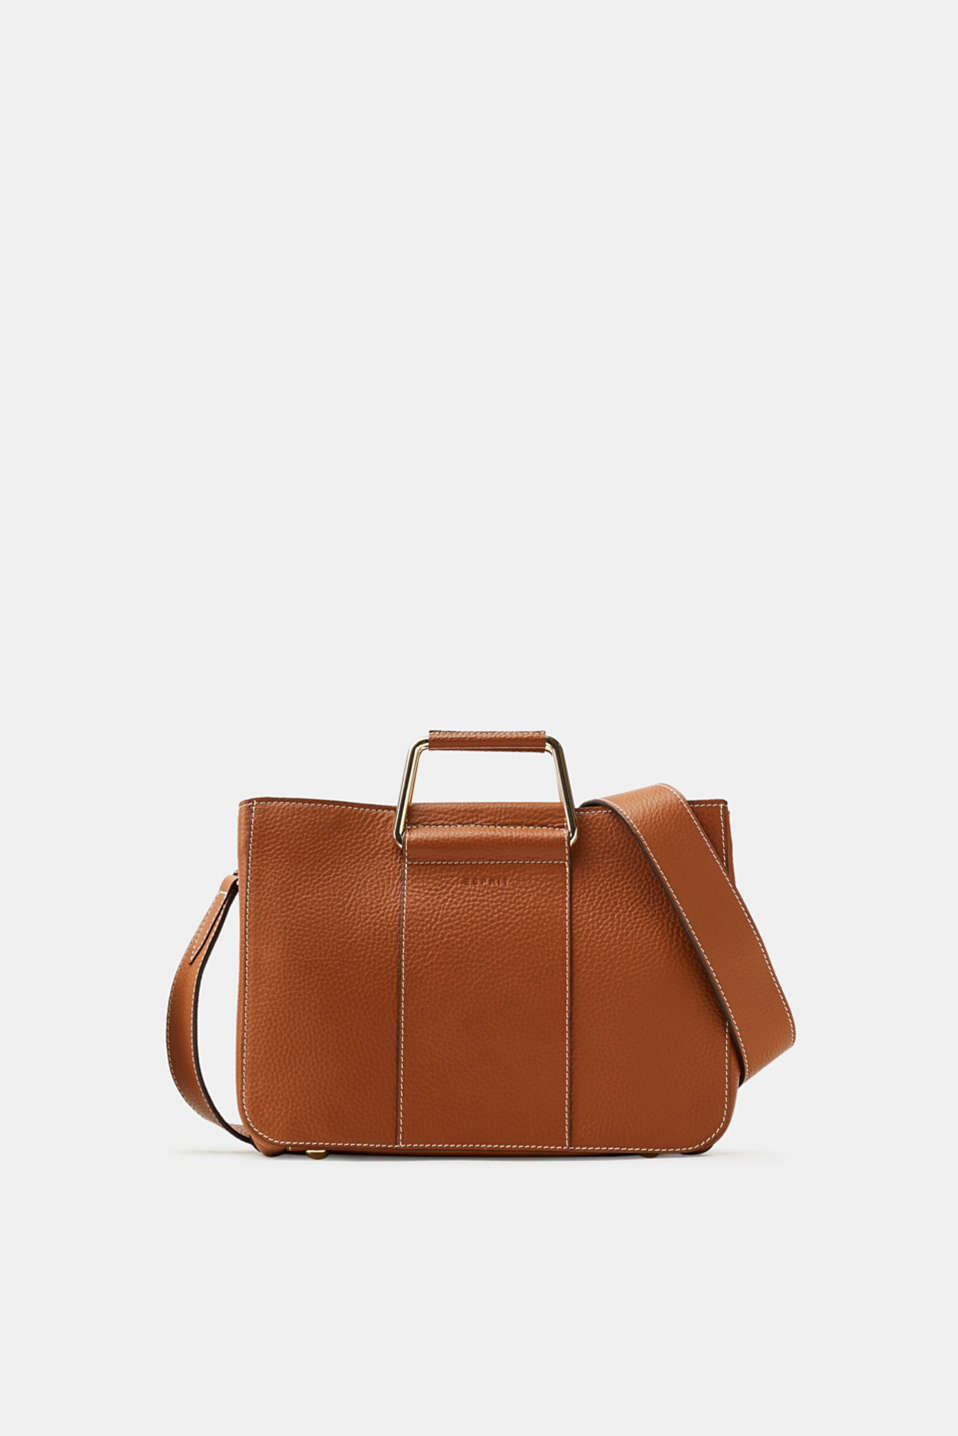 En elegant eyecatcher med potentiale til it-bag: elegant city-bag af okseskind.